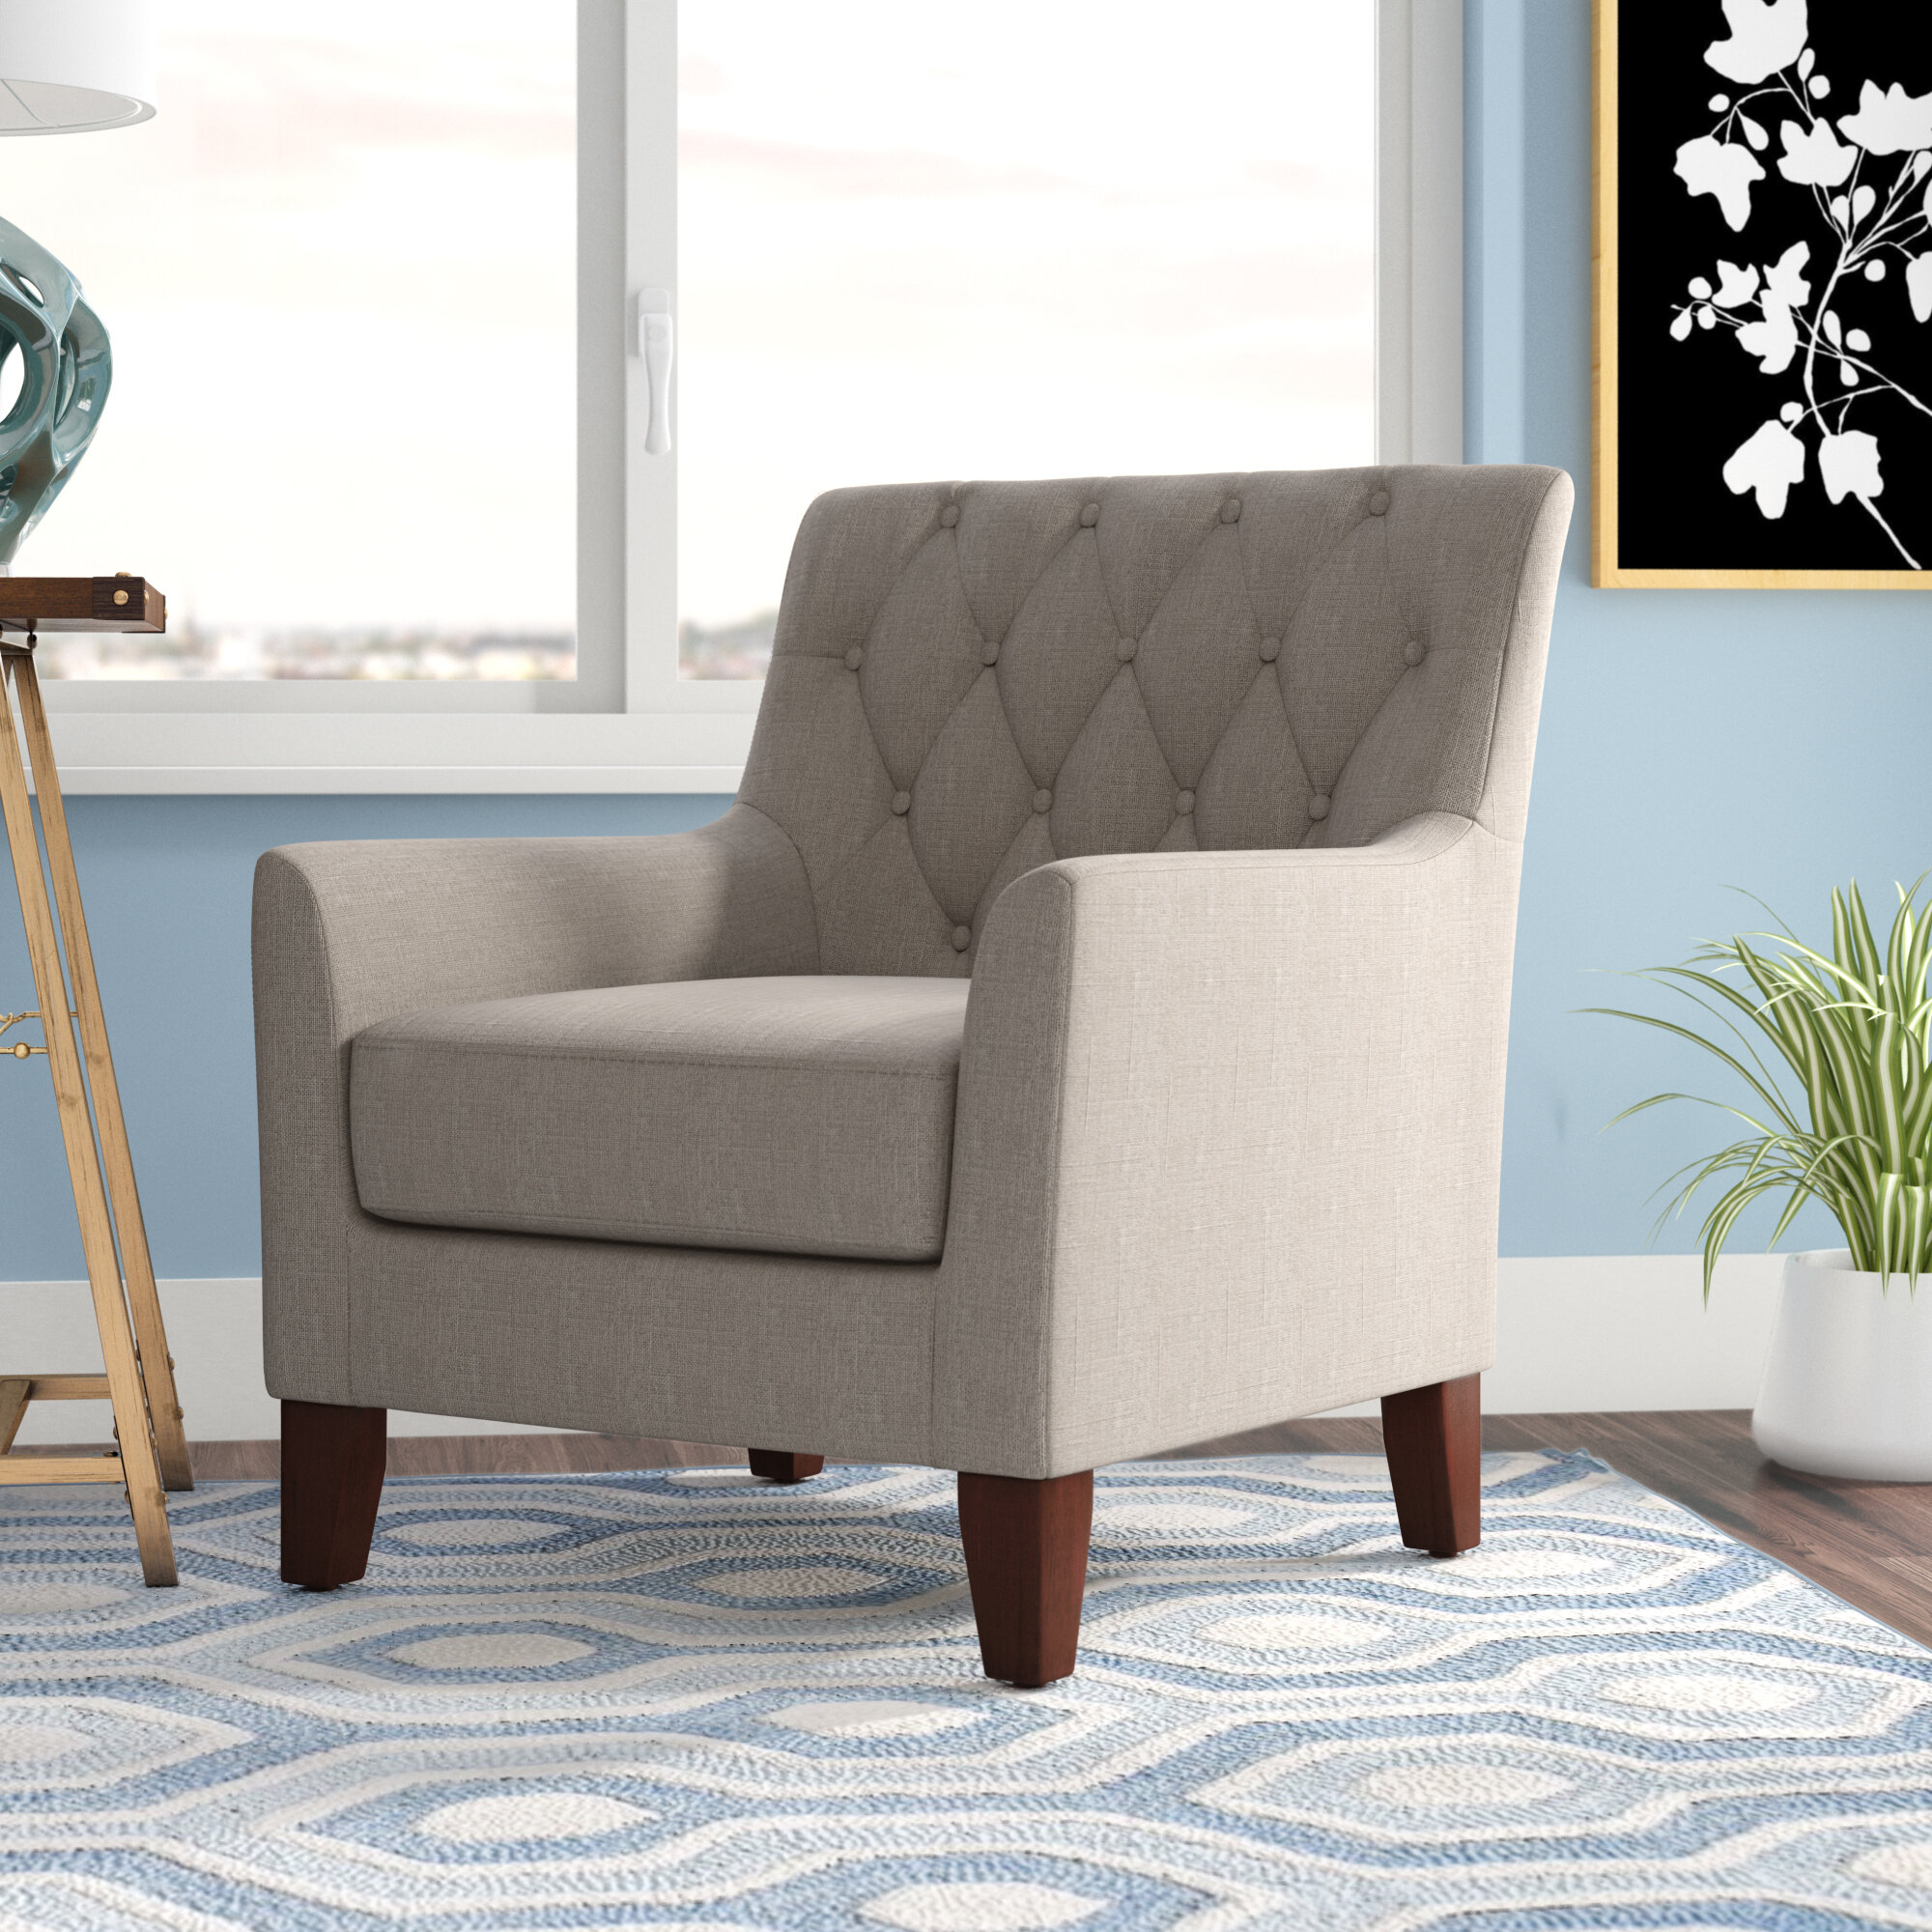 Wantm – We Do The Research For You! In Donham Armchairs (View 15 of 15)